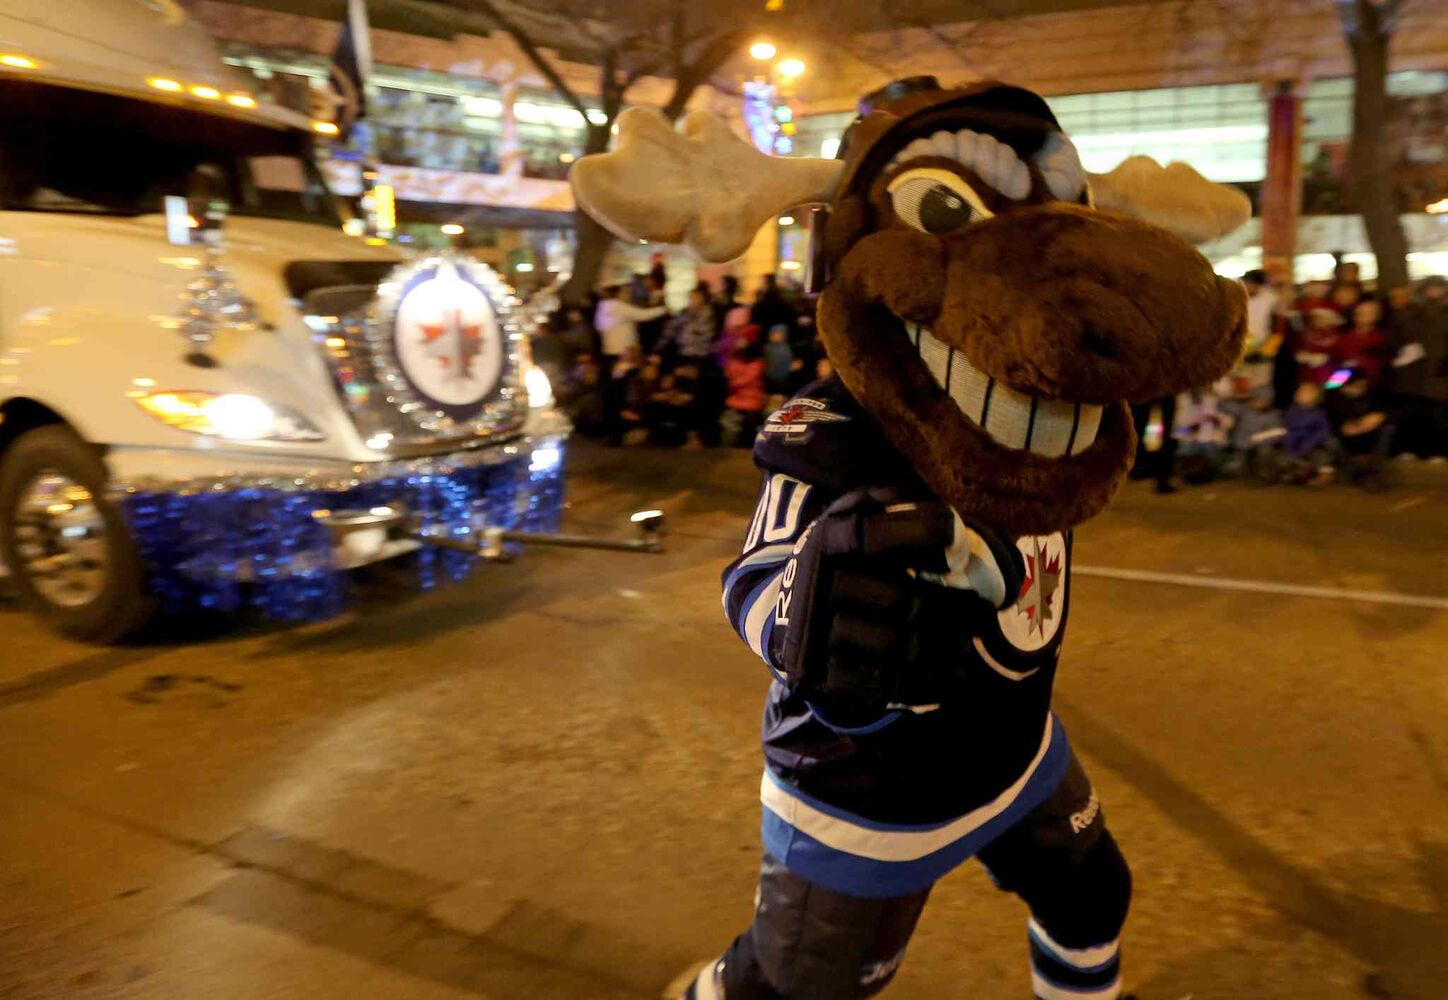 Winnipeg Jets mascot Mick E. Moose was among the paraders.